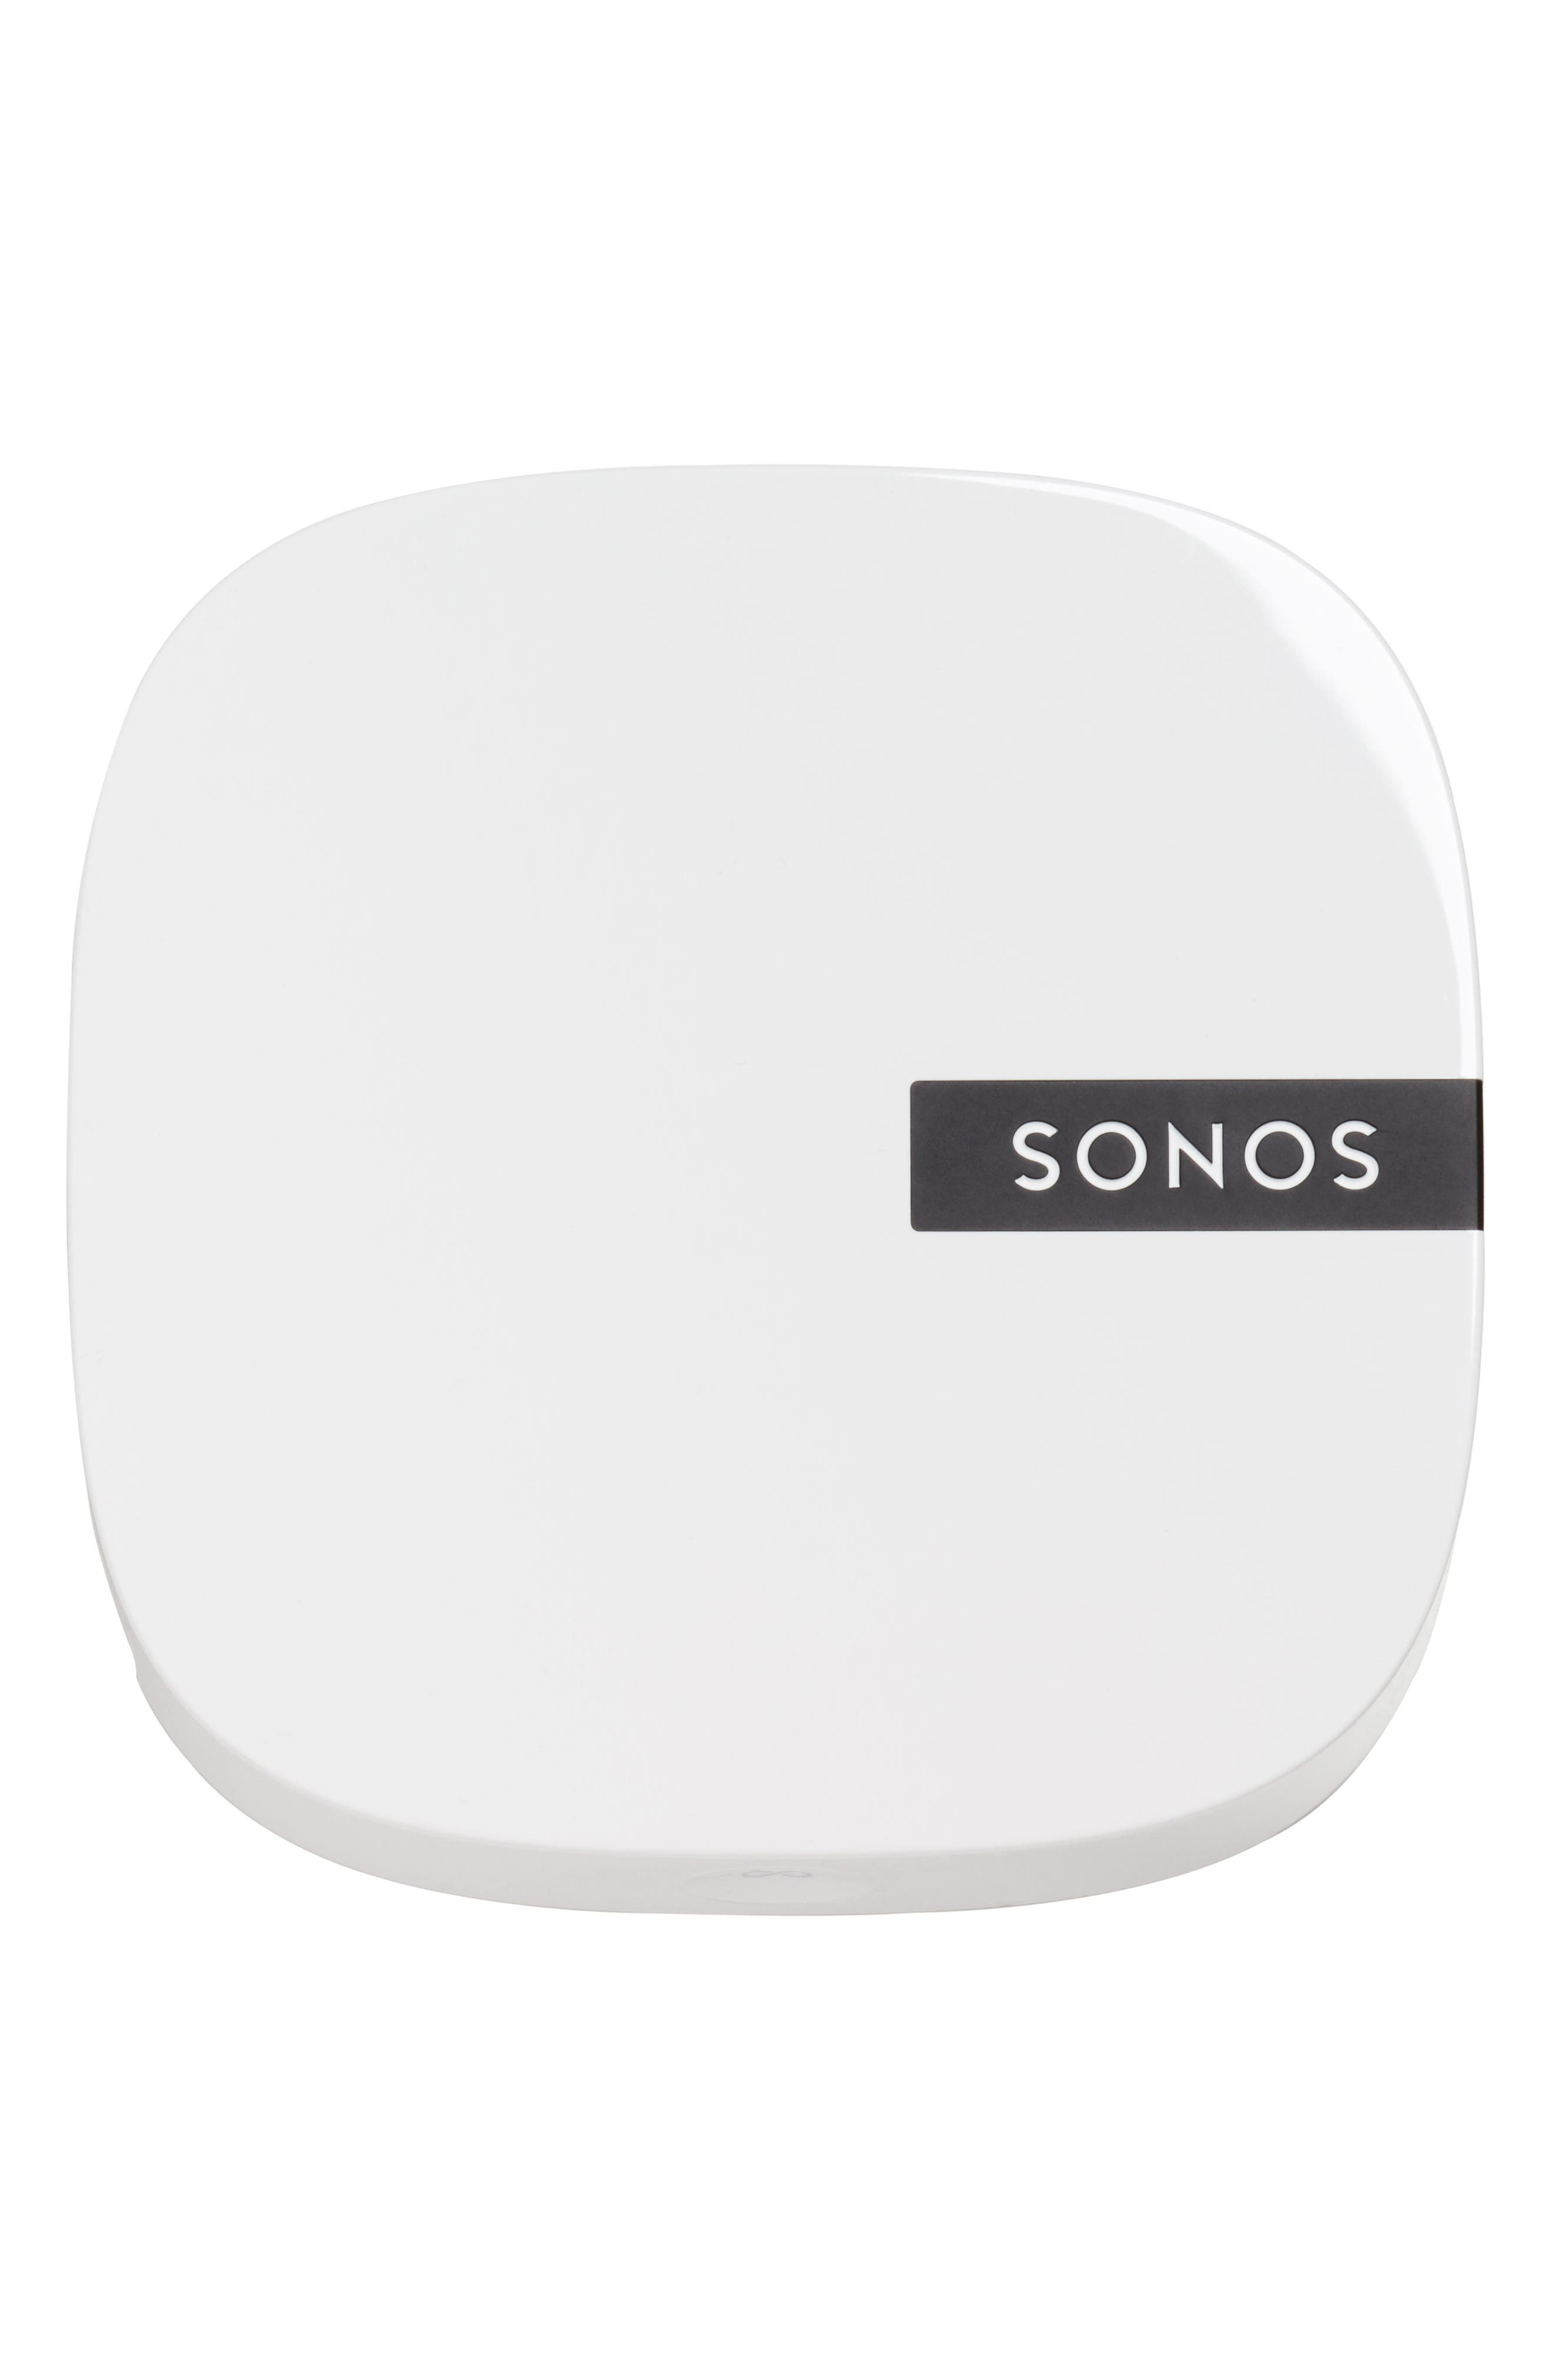 Sonos BOOST Wi-Fi Signal Booster